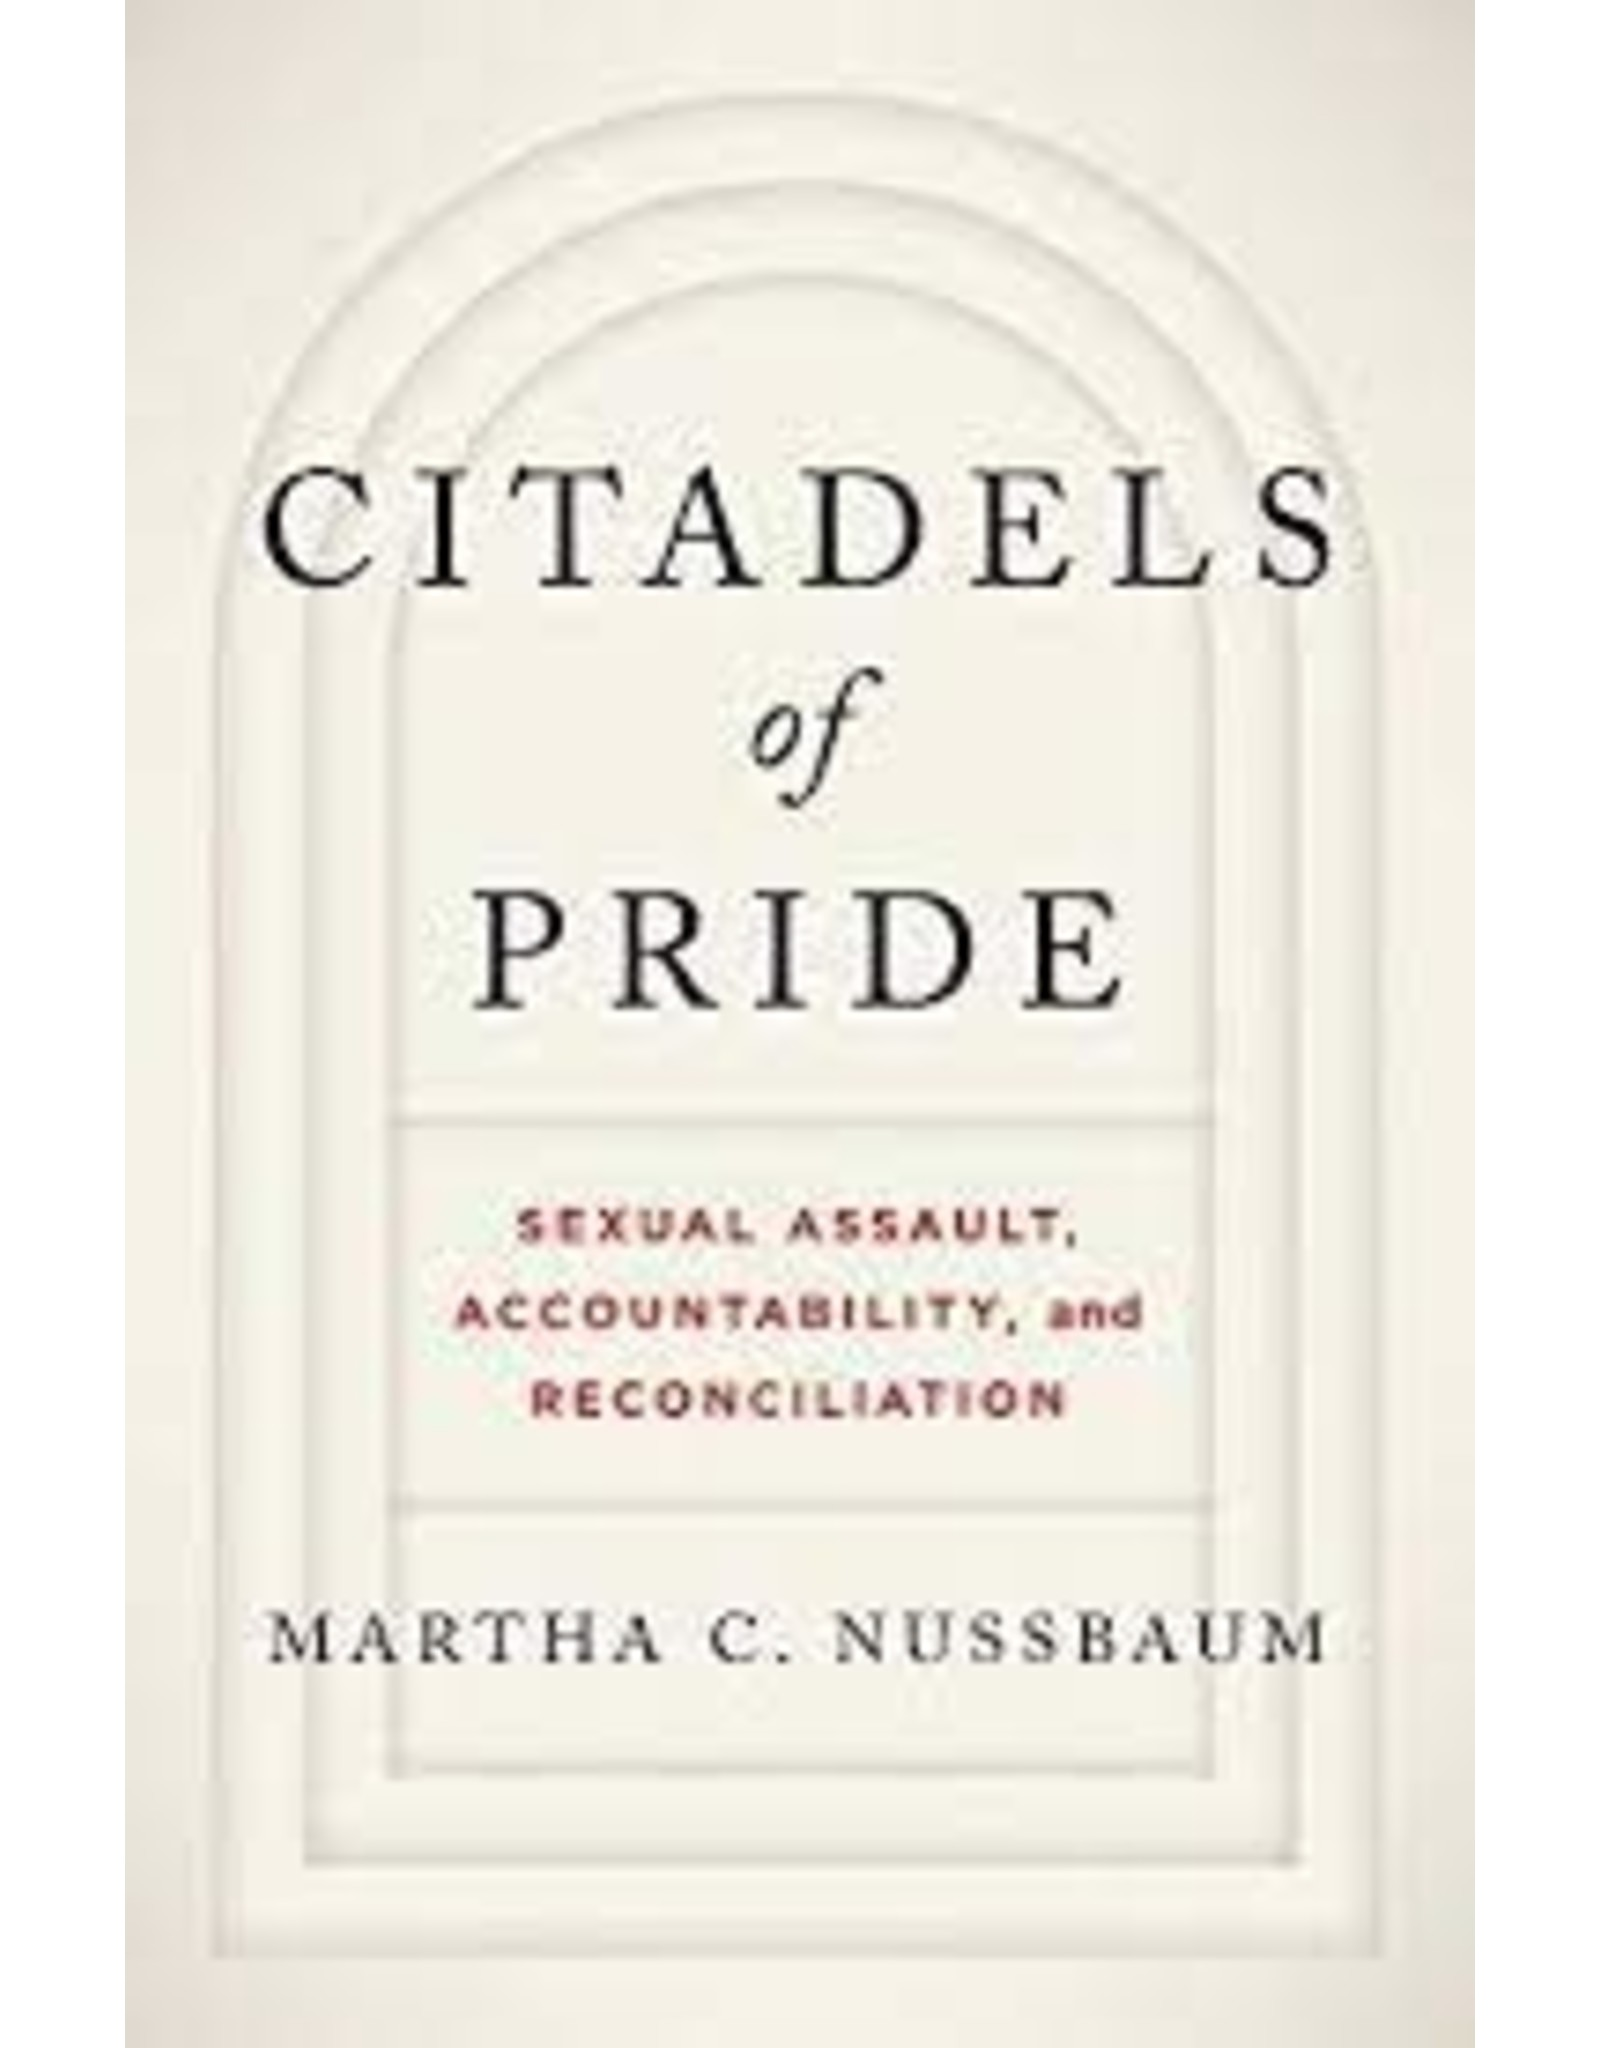 Books Citadels of Pride: Sexual Assault, Accountability and Reconciliation by Martha C. Nussbaum